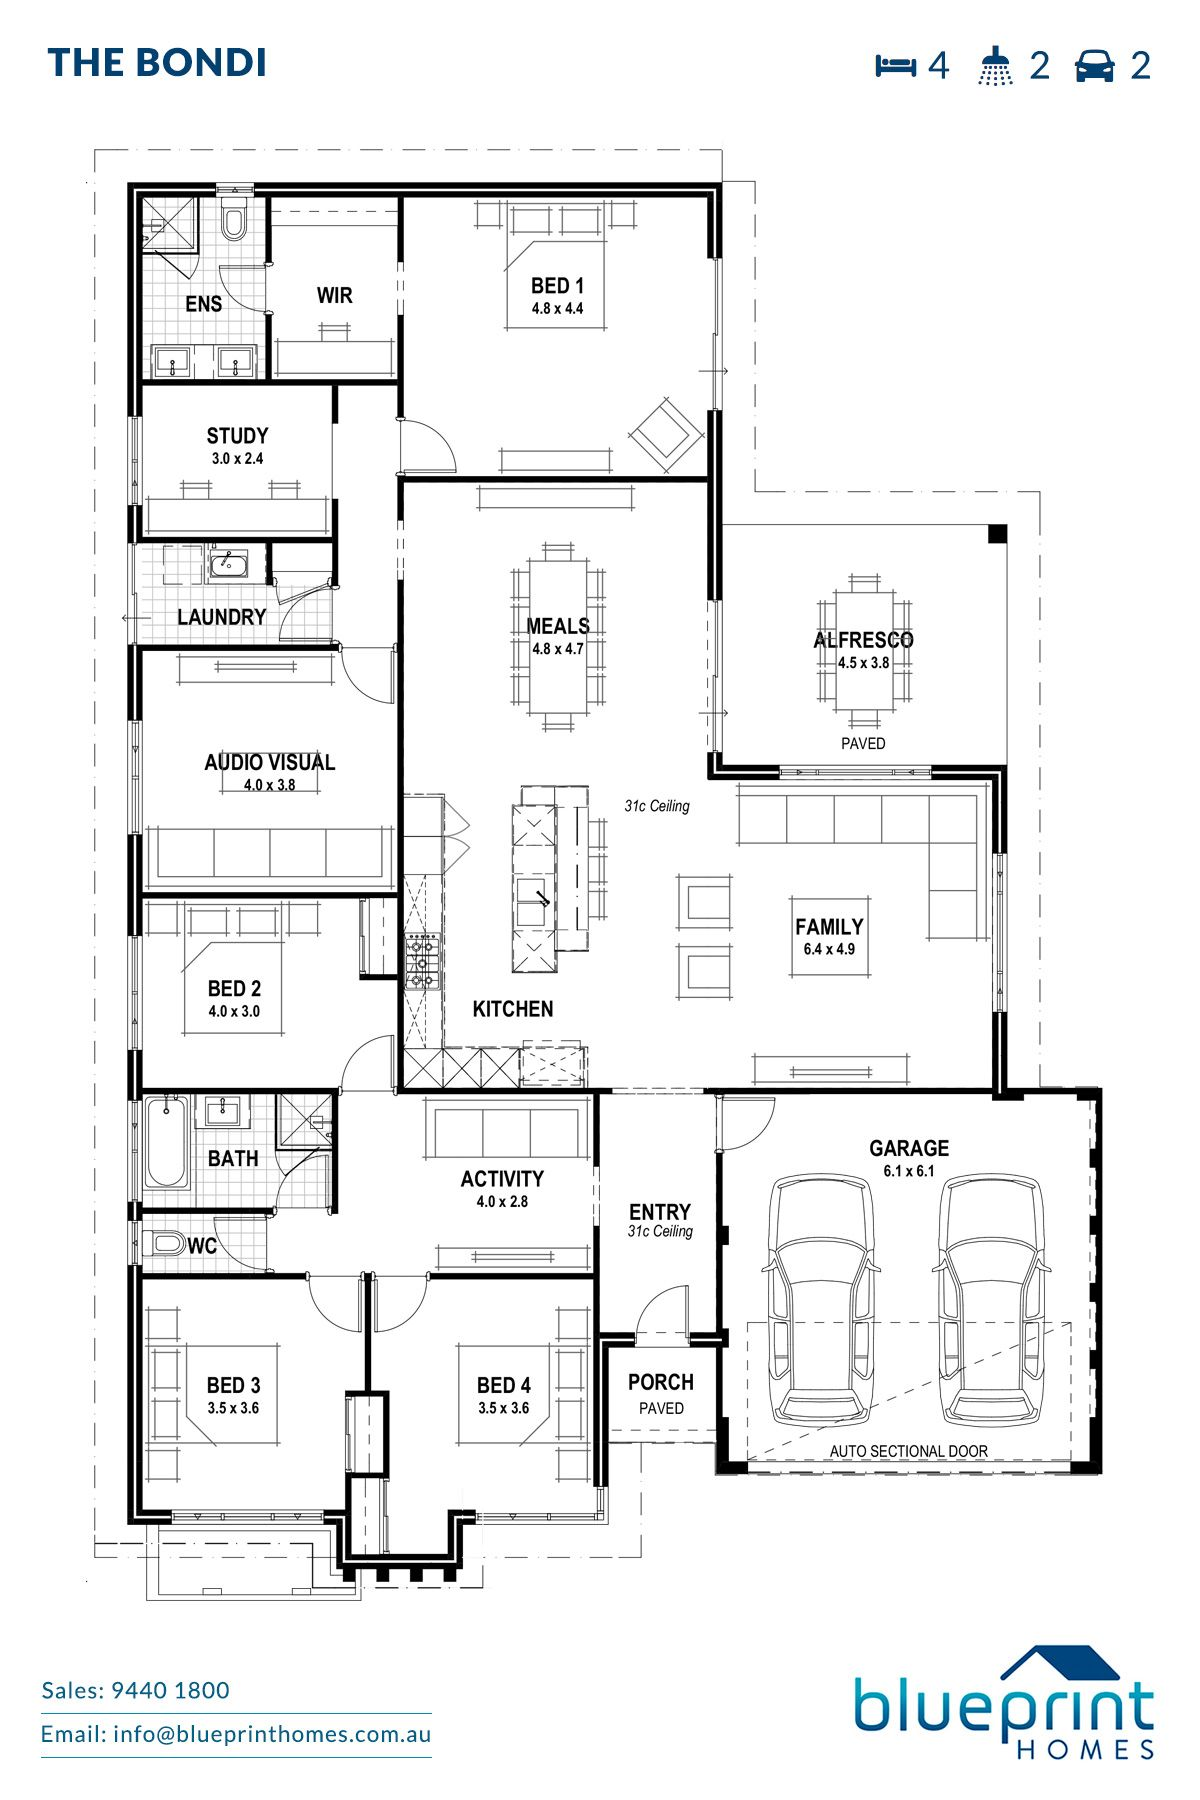 The bondi houses pinterest house small house plans and the bondi blueprint homes malvernweather Image collections